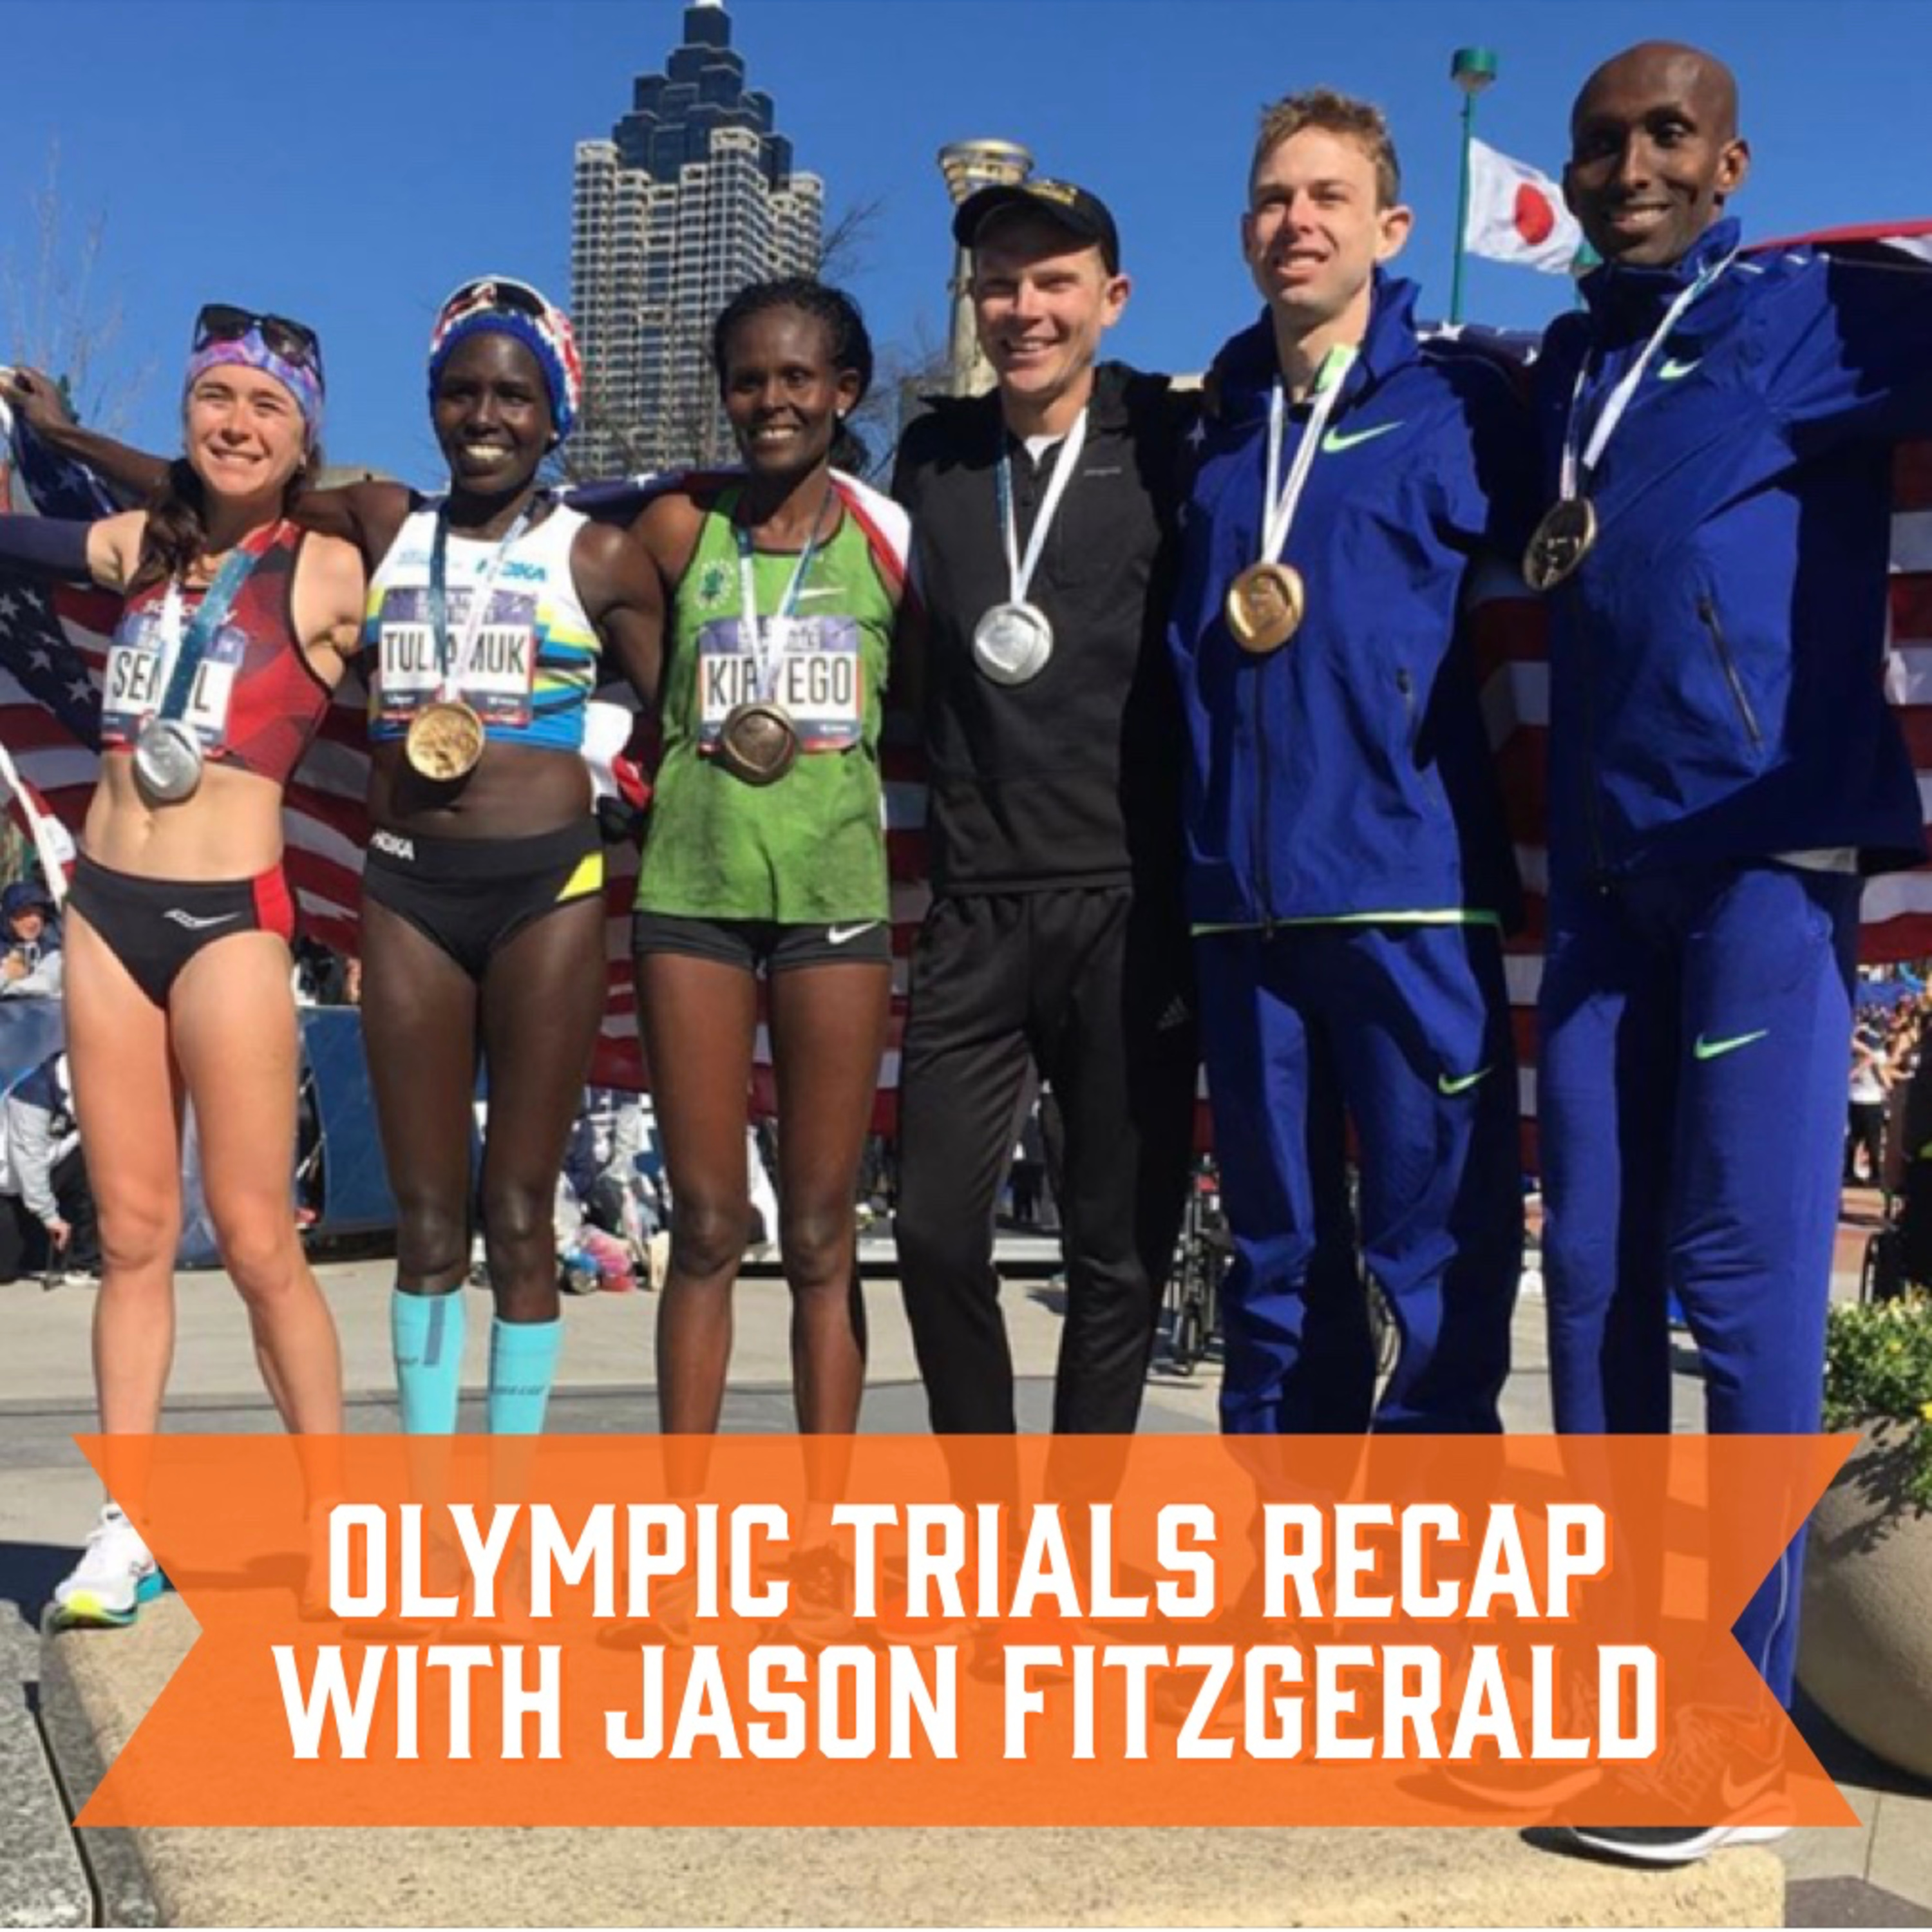 Ep. 49 - Olympic Trials Recap with Jason Fitzgerald